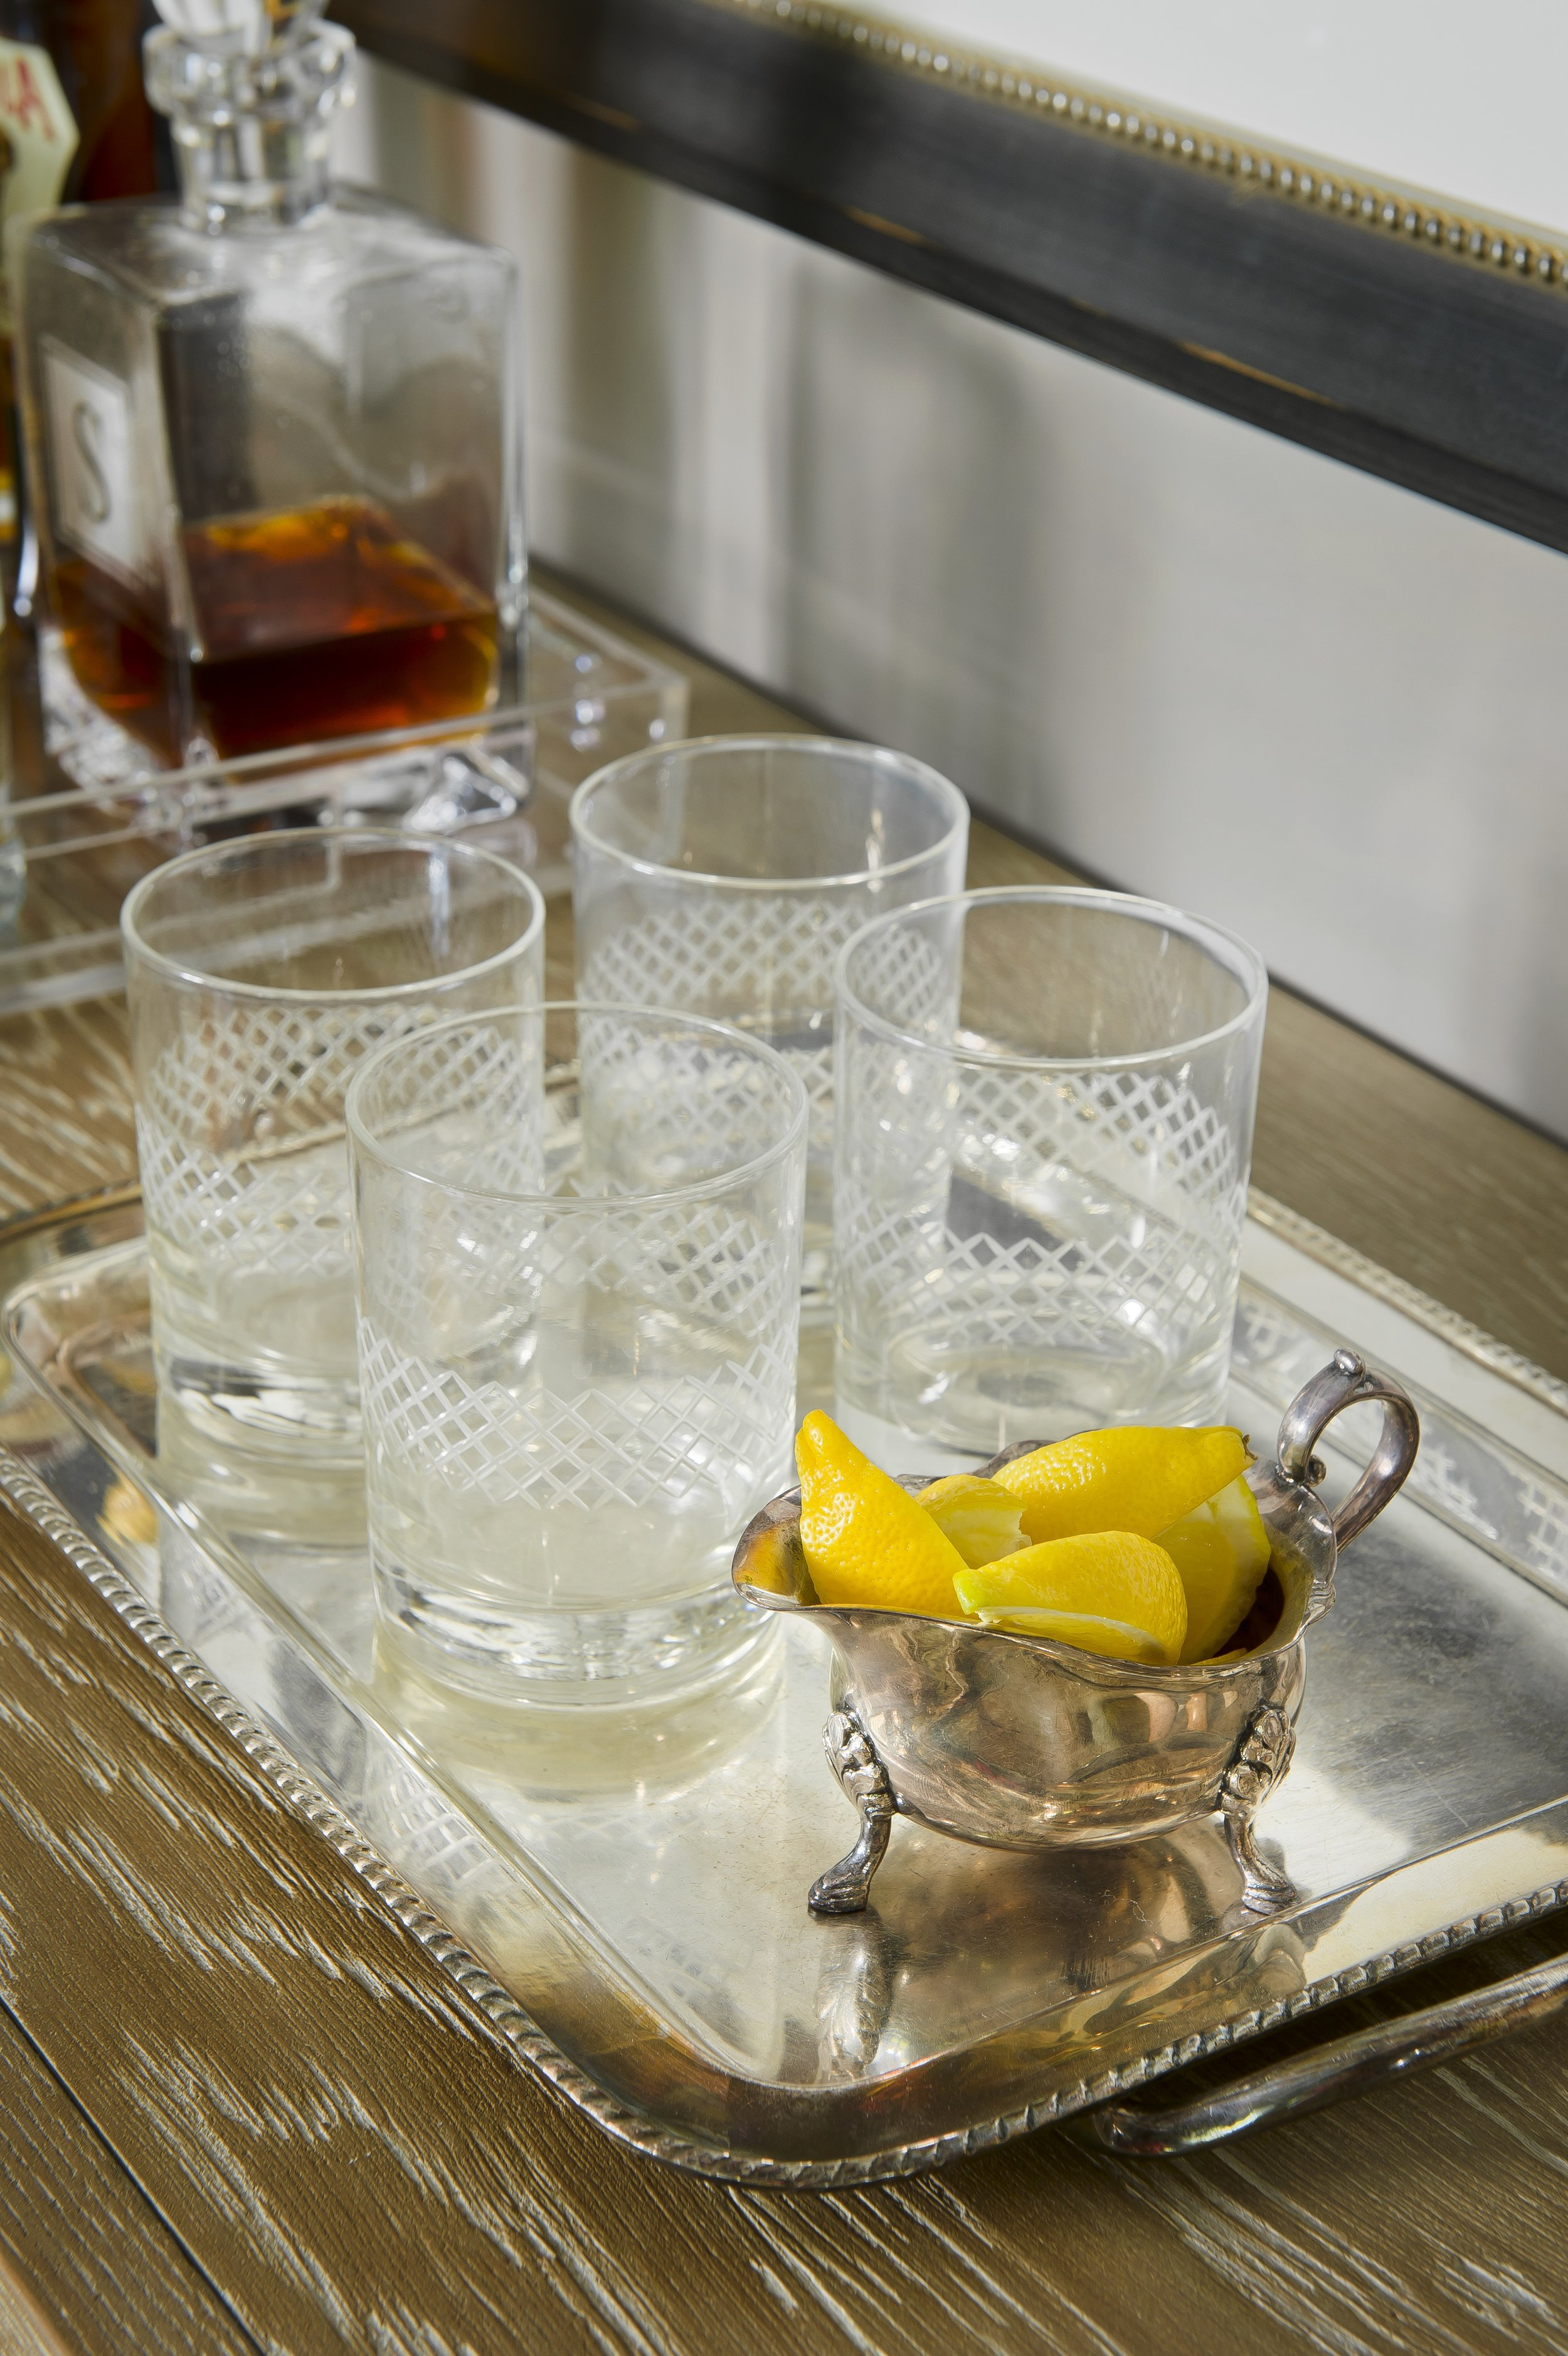 {Pretty glasses and fresh fruit for garnish make for an easy-to-use part of any bar.  Overhill Road  design by April Force Pardoe Interiors.}